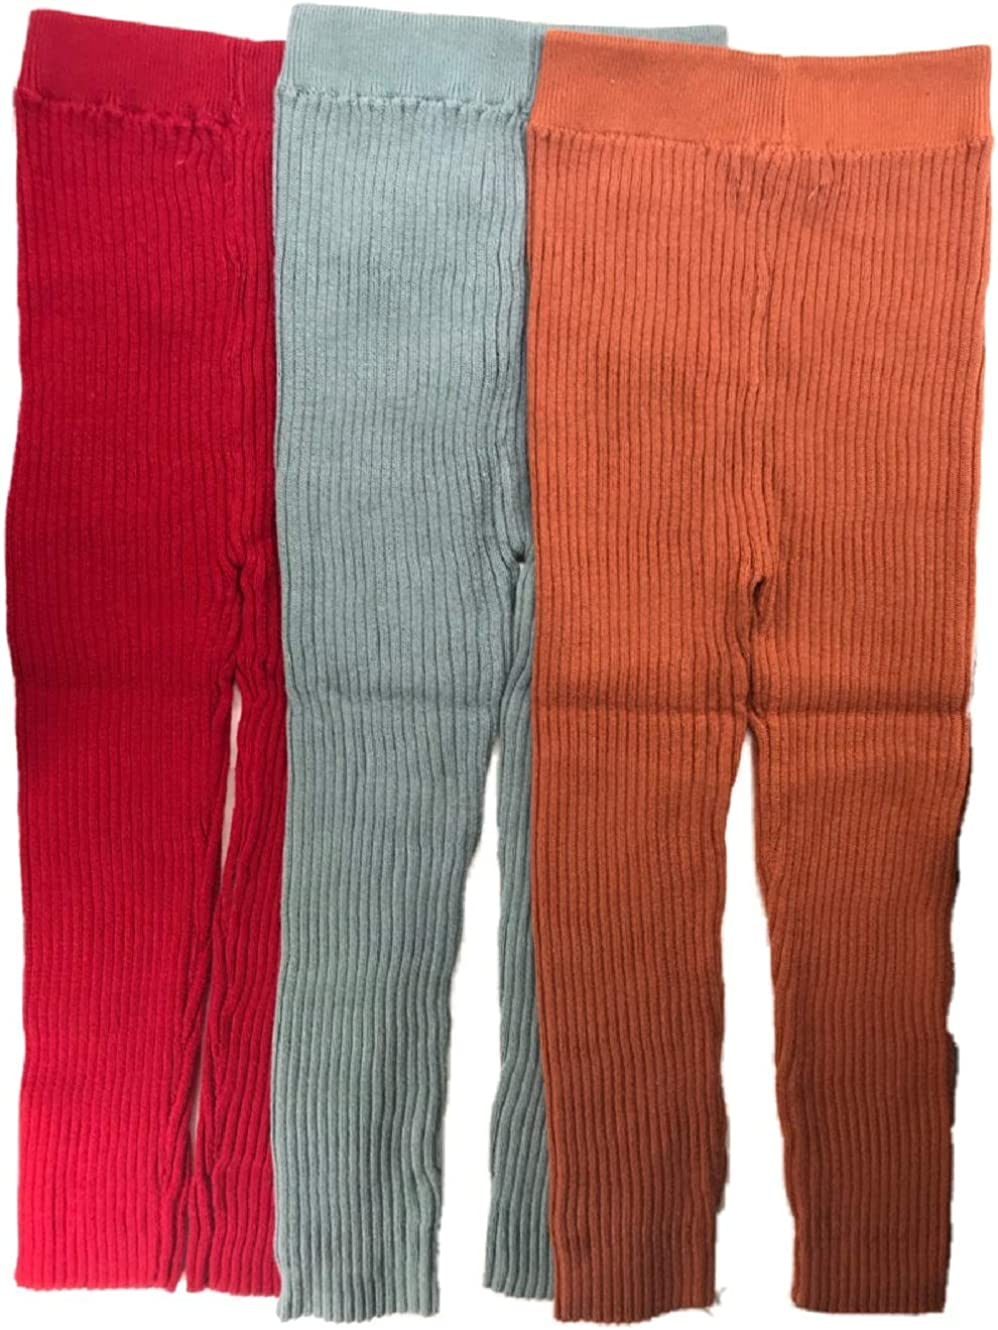 Elise Home 3 Pack Baby Girls Leggings Footless Tights Knit Panty Cue Candy Color V